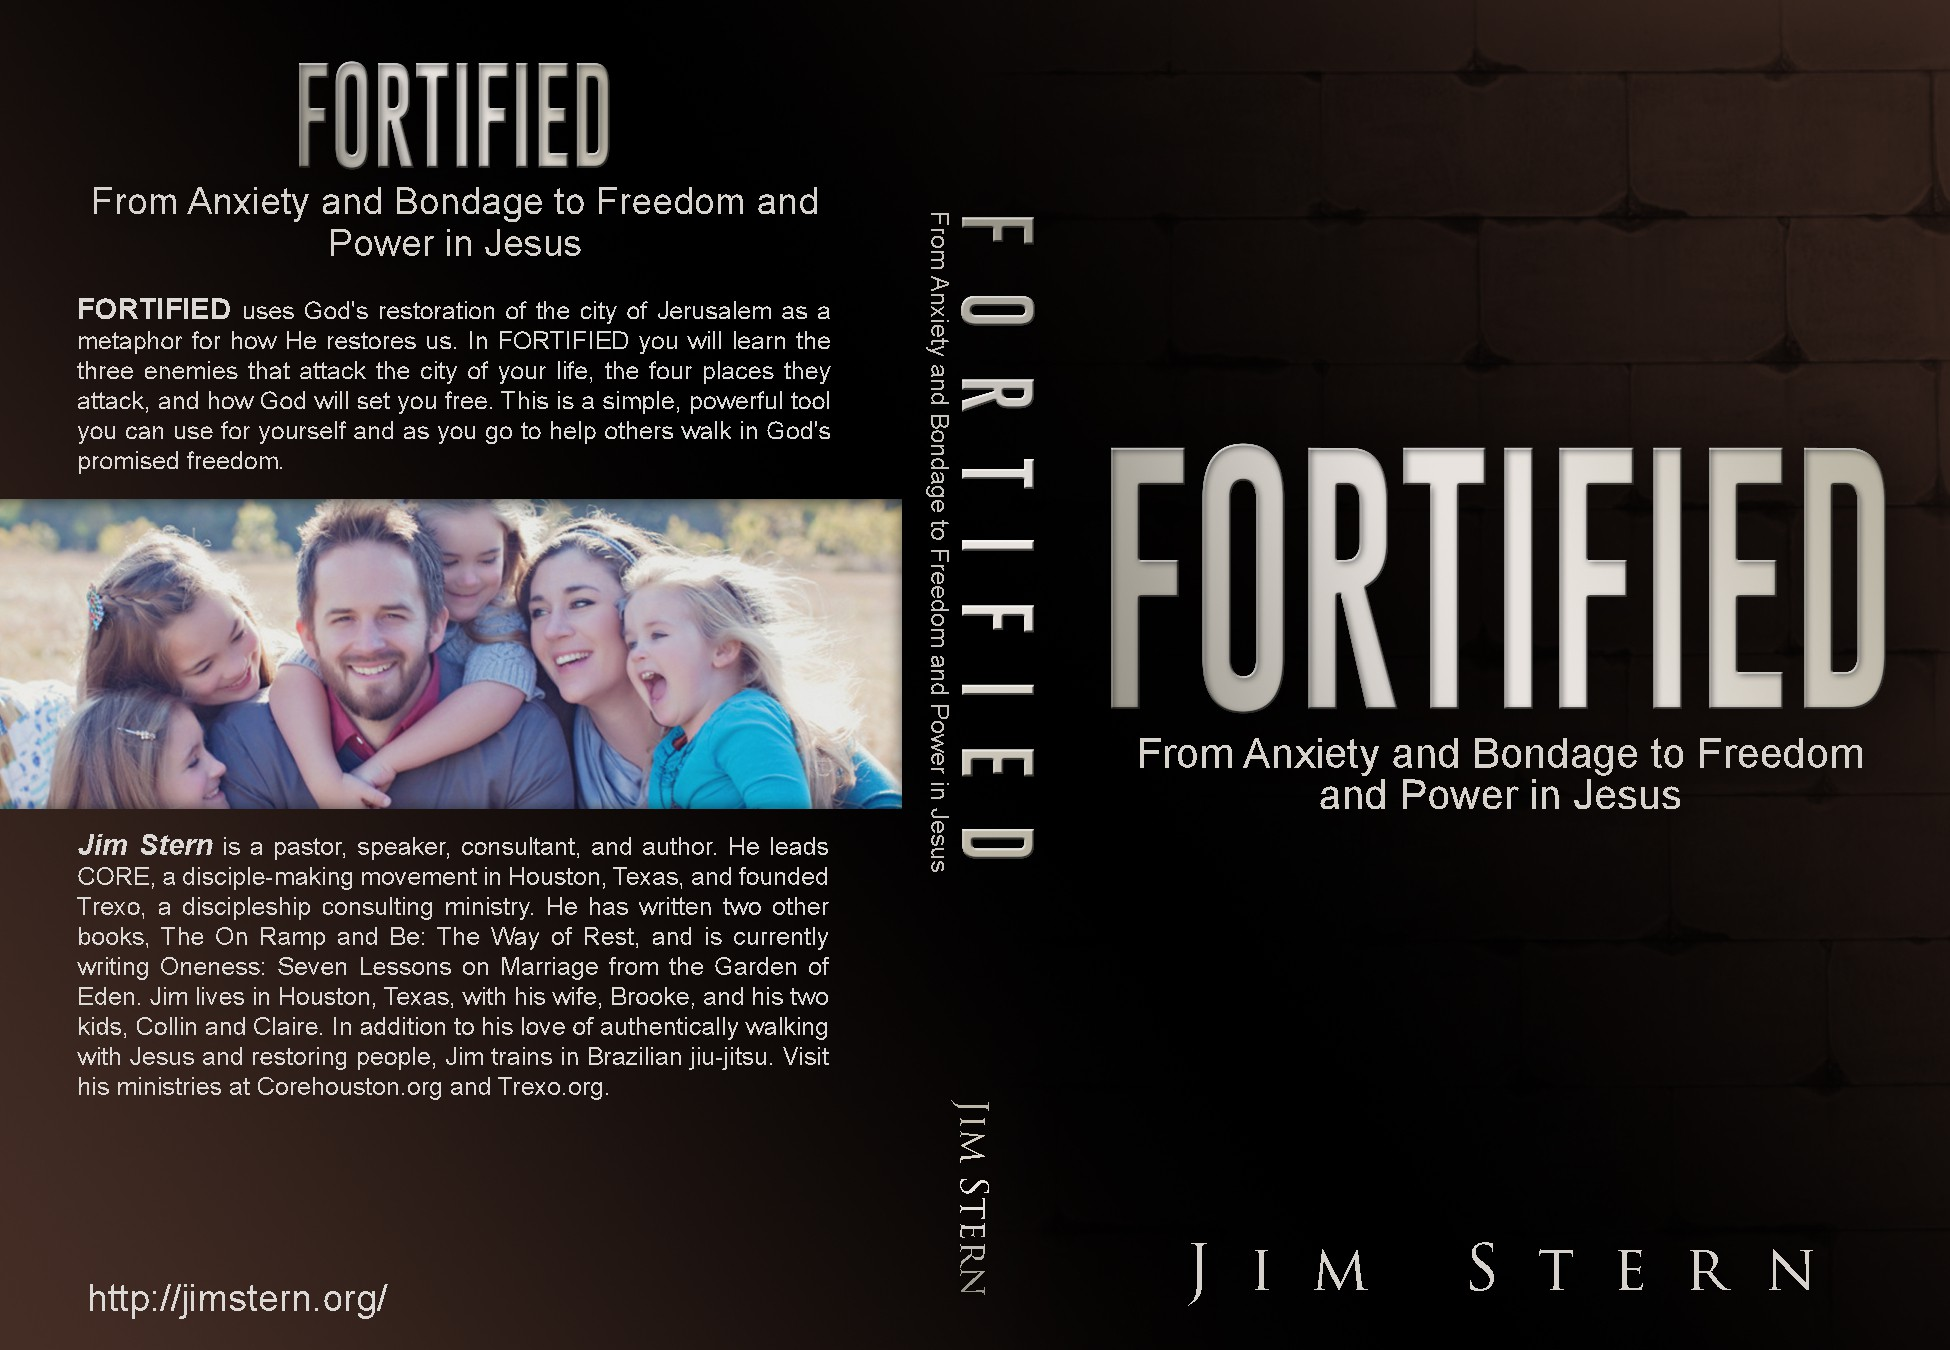 Create a strong book cover for a Christian workbook on being set free.